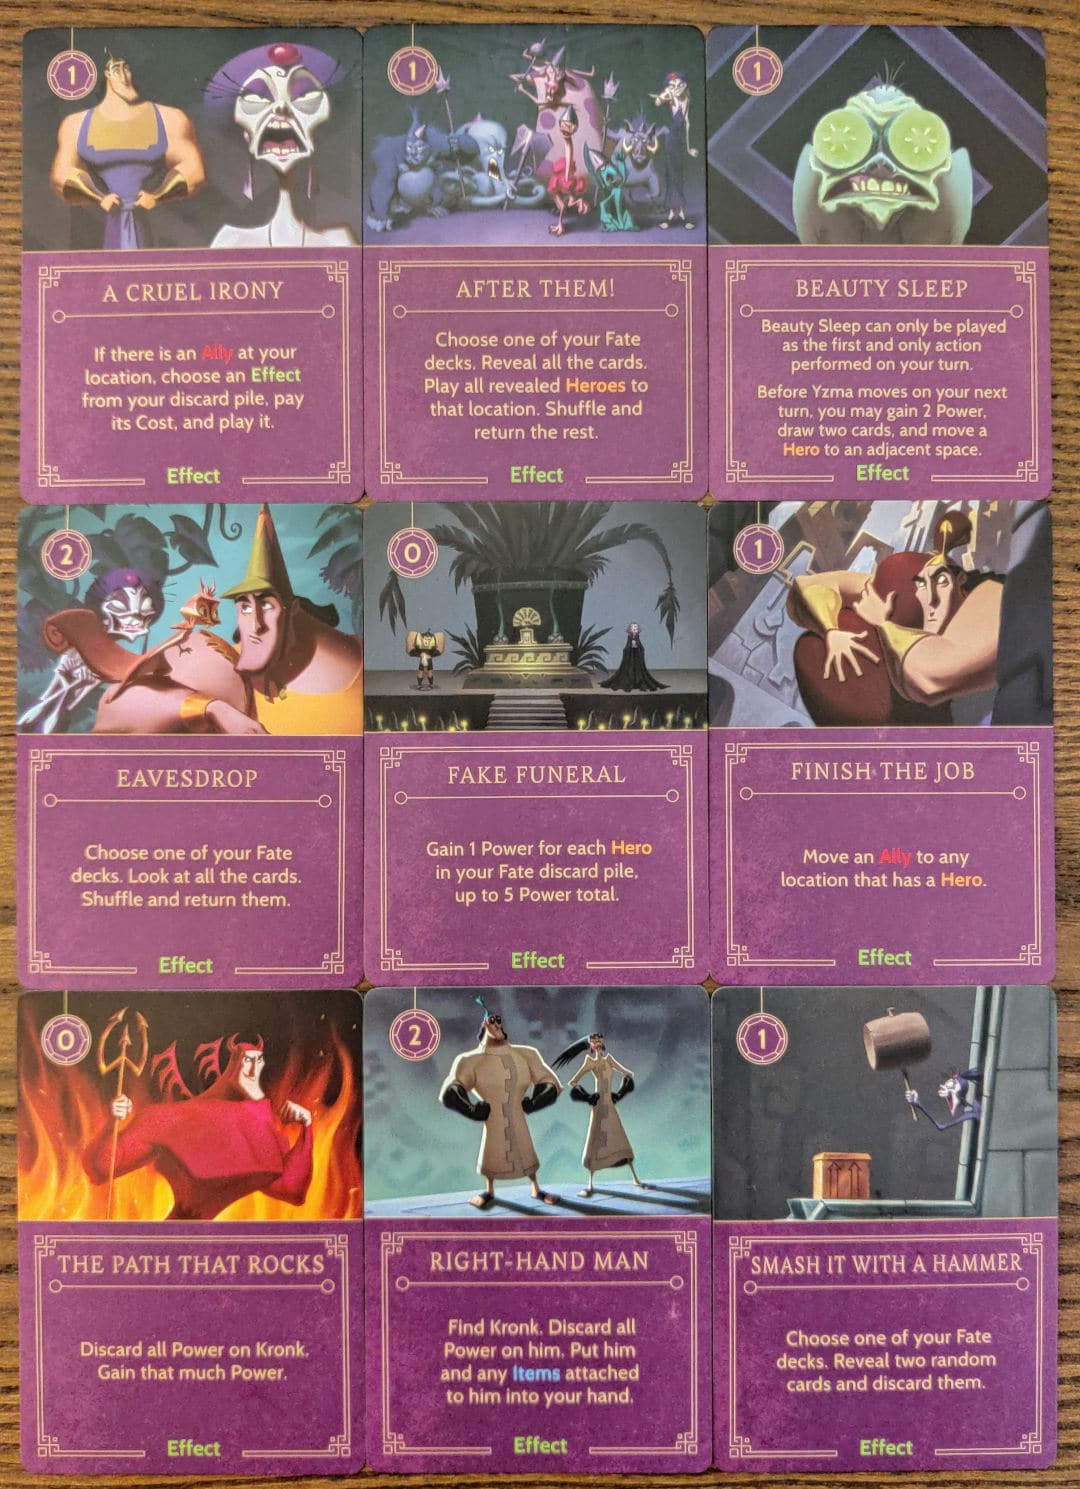 Yzma's Effect cards from her Villain Deck